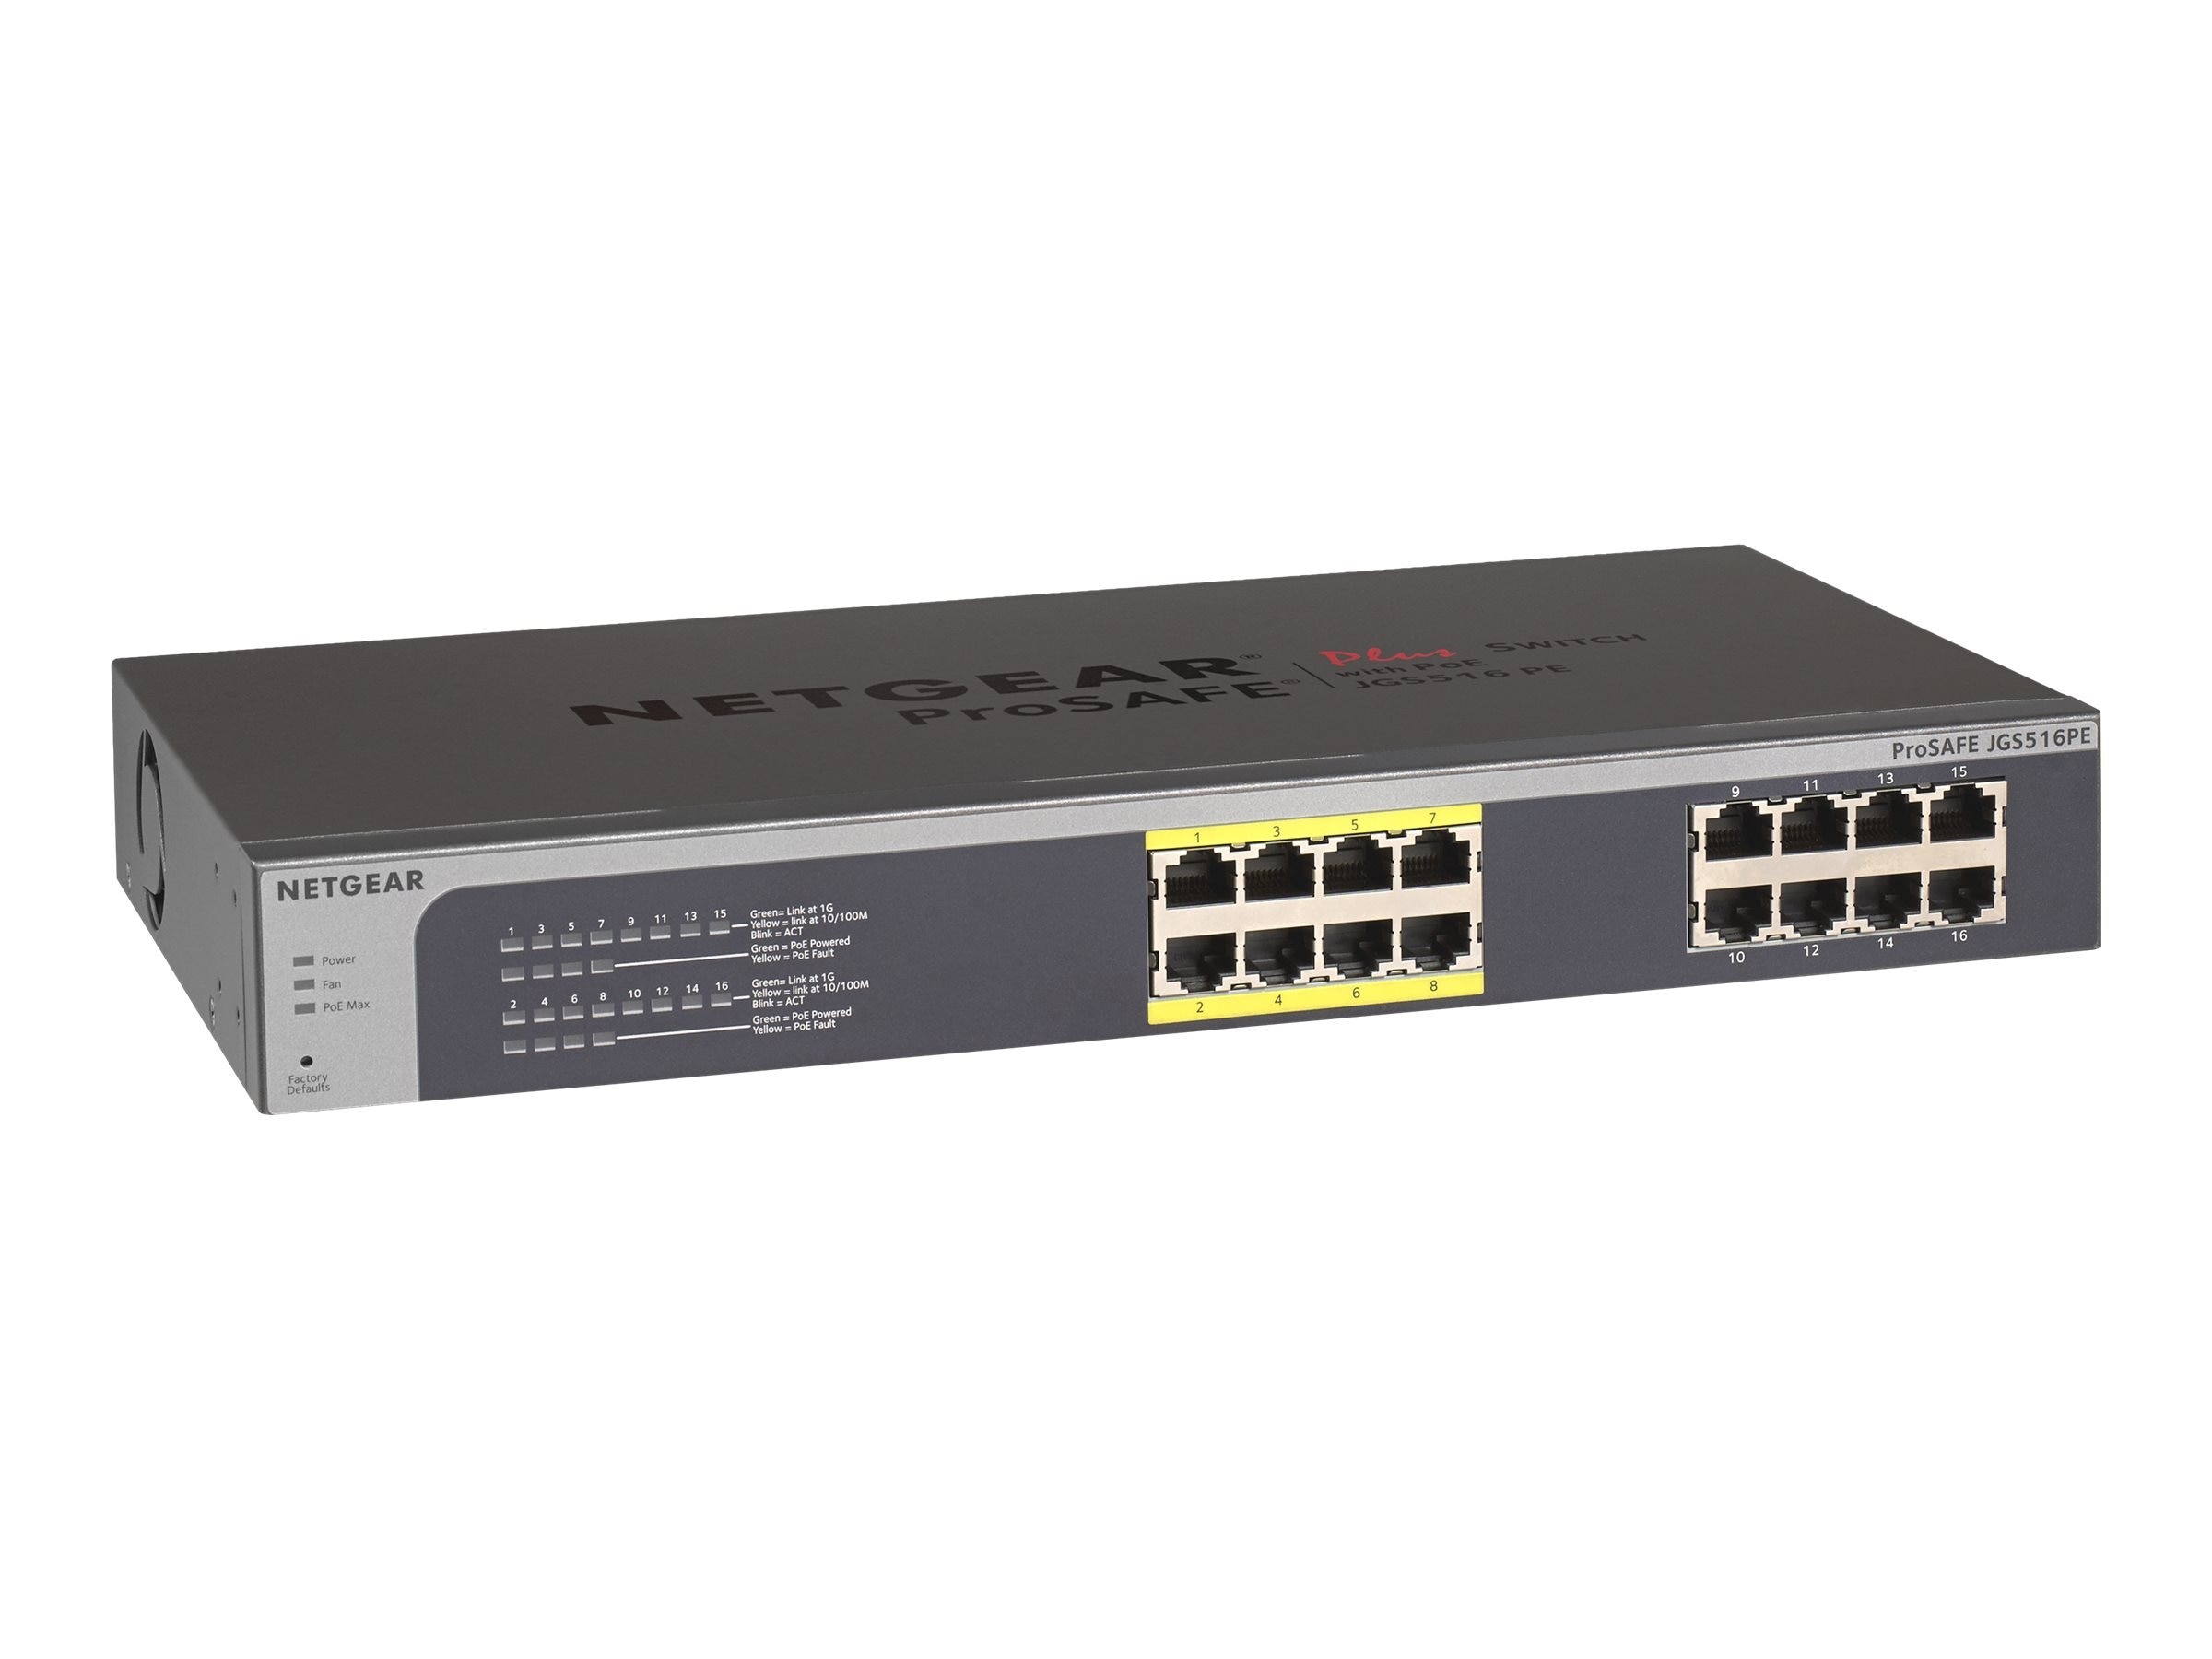 Netgear 16-Port Prosafe Plus Gigabit Switch w PoE, JGS516PE-100NAS, 16459385, Network Switches